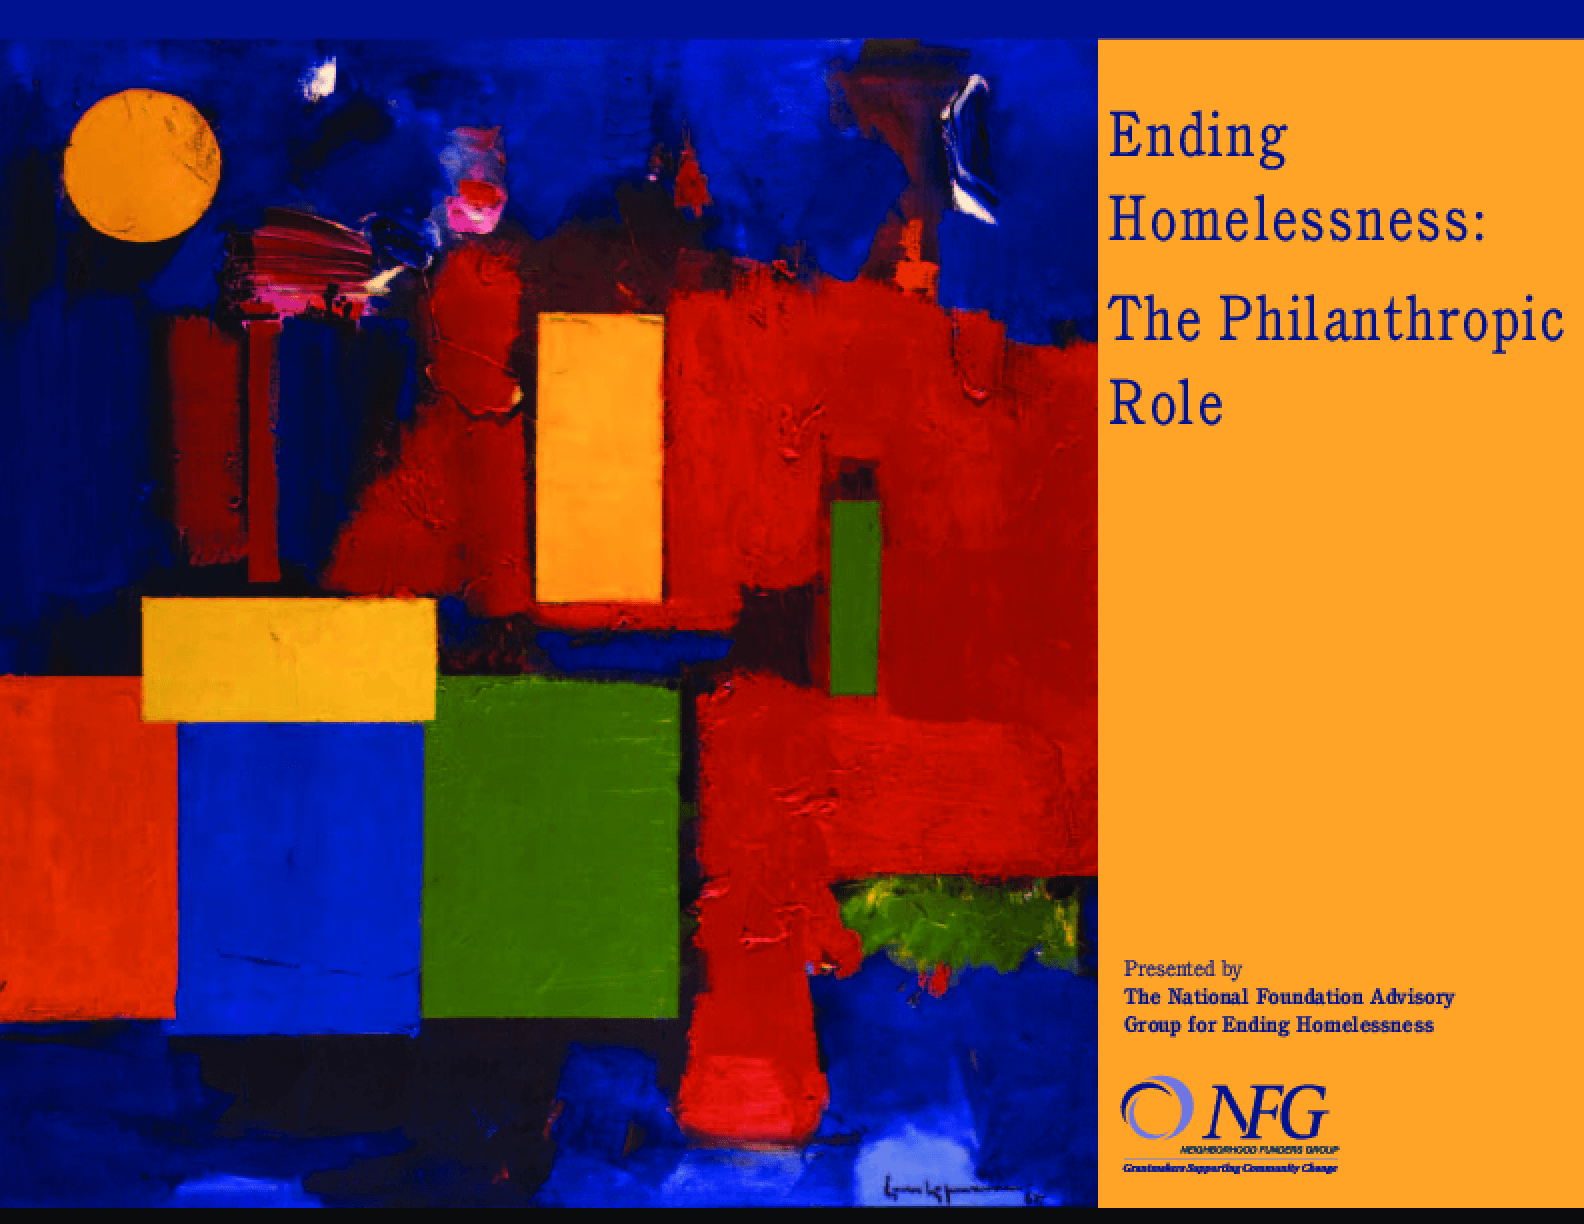 Ending Homelessness: The Philanthropic Role